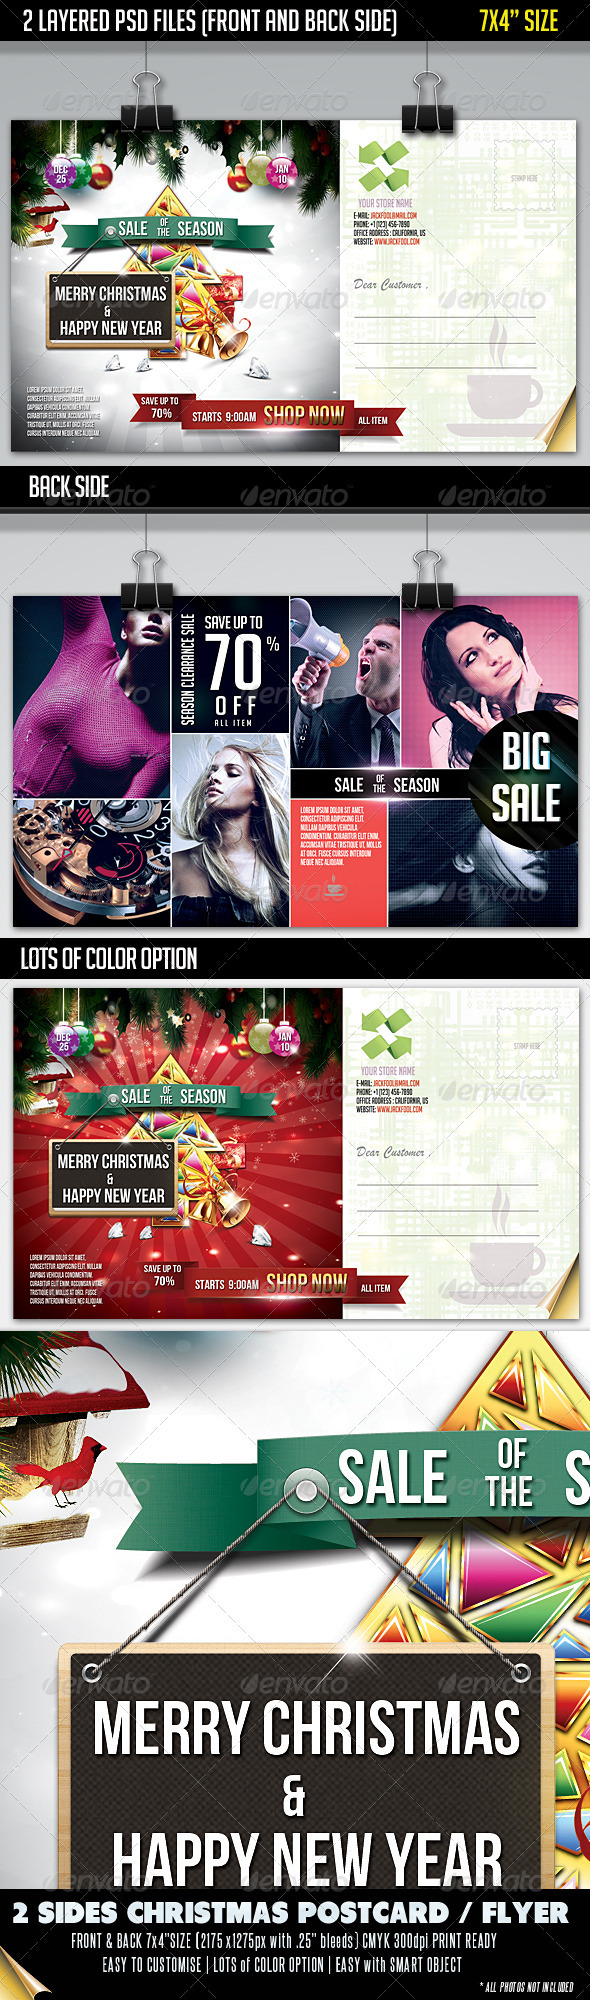 GraphicRiver Christmas Sale Postcard-Front & Back 3375504